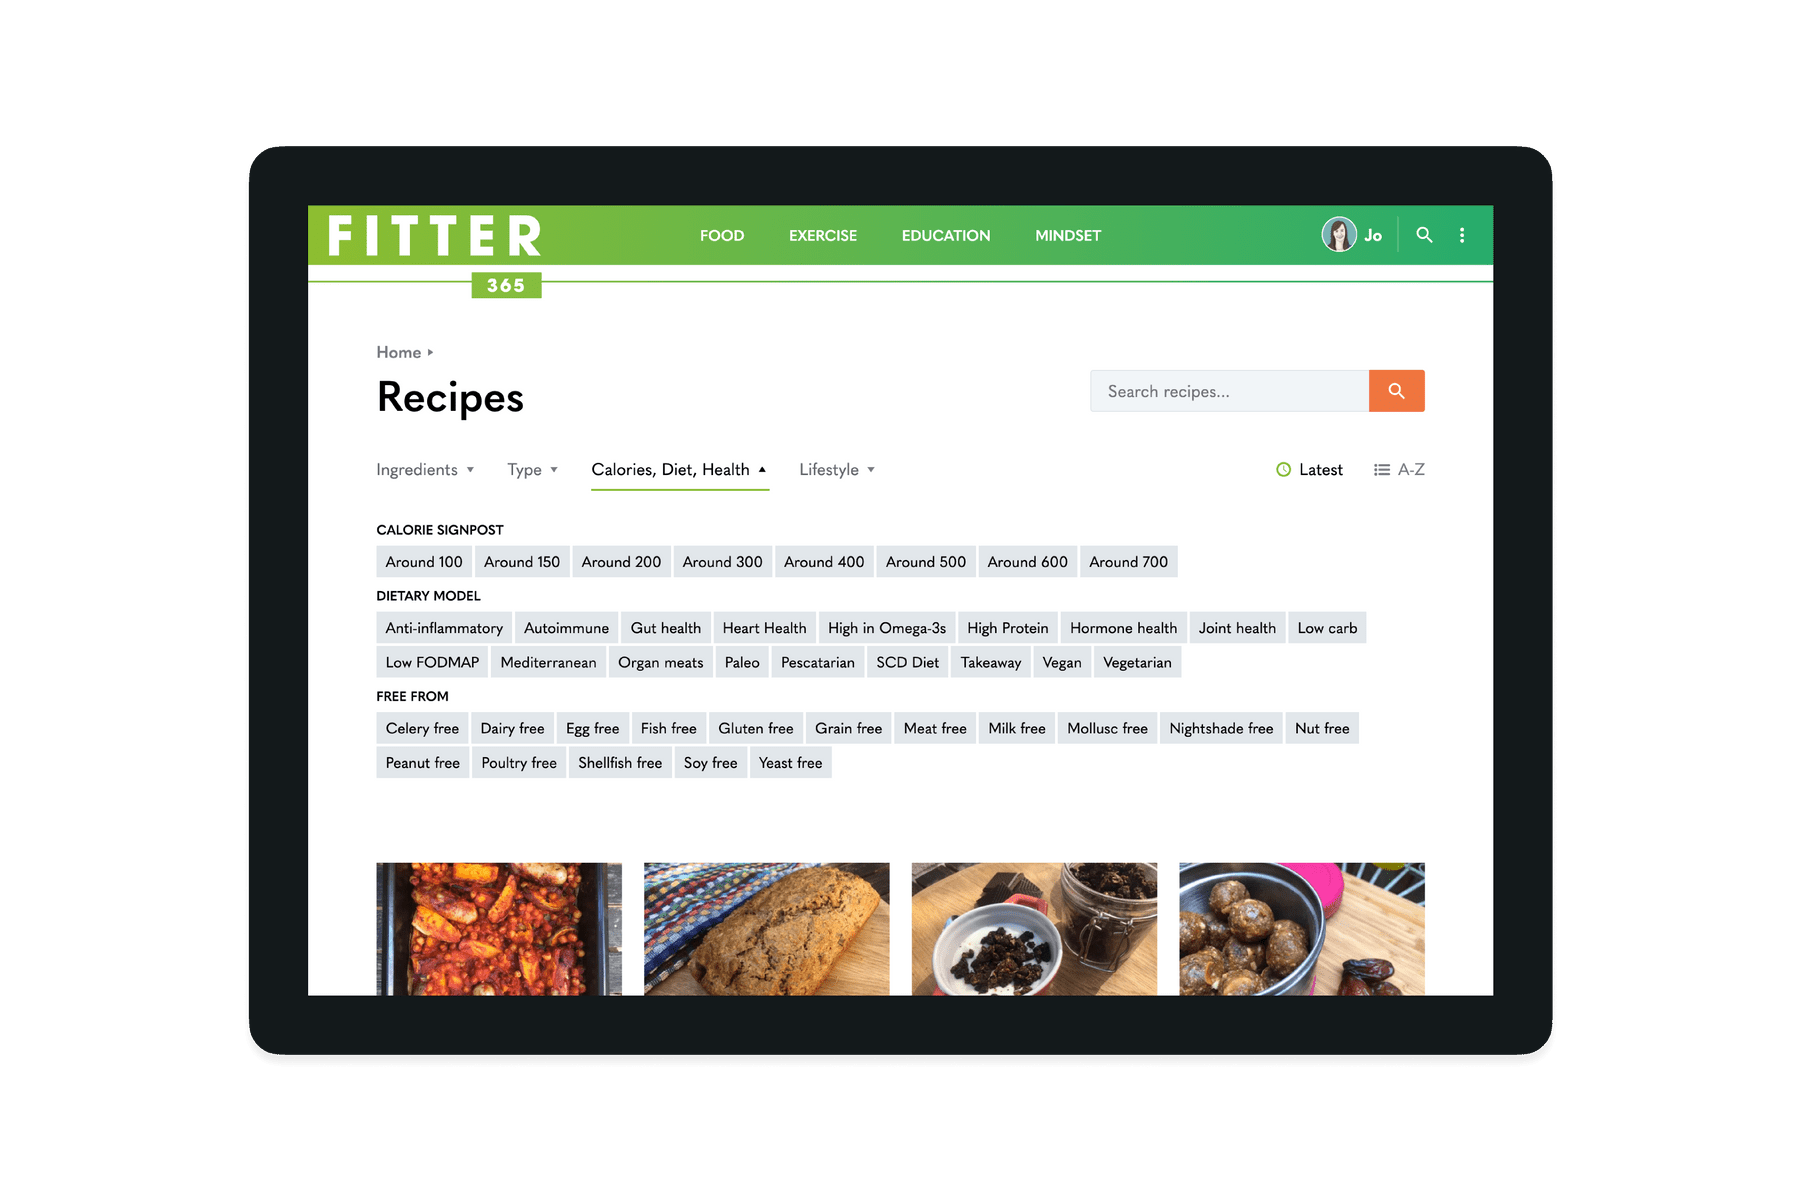 Tablet showing the Recipe filters on the Fitter 365 website